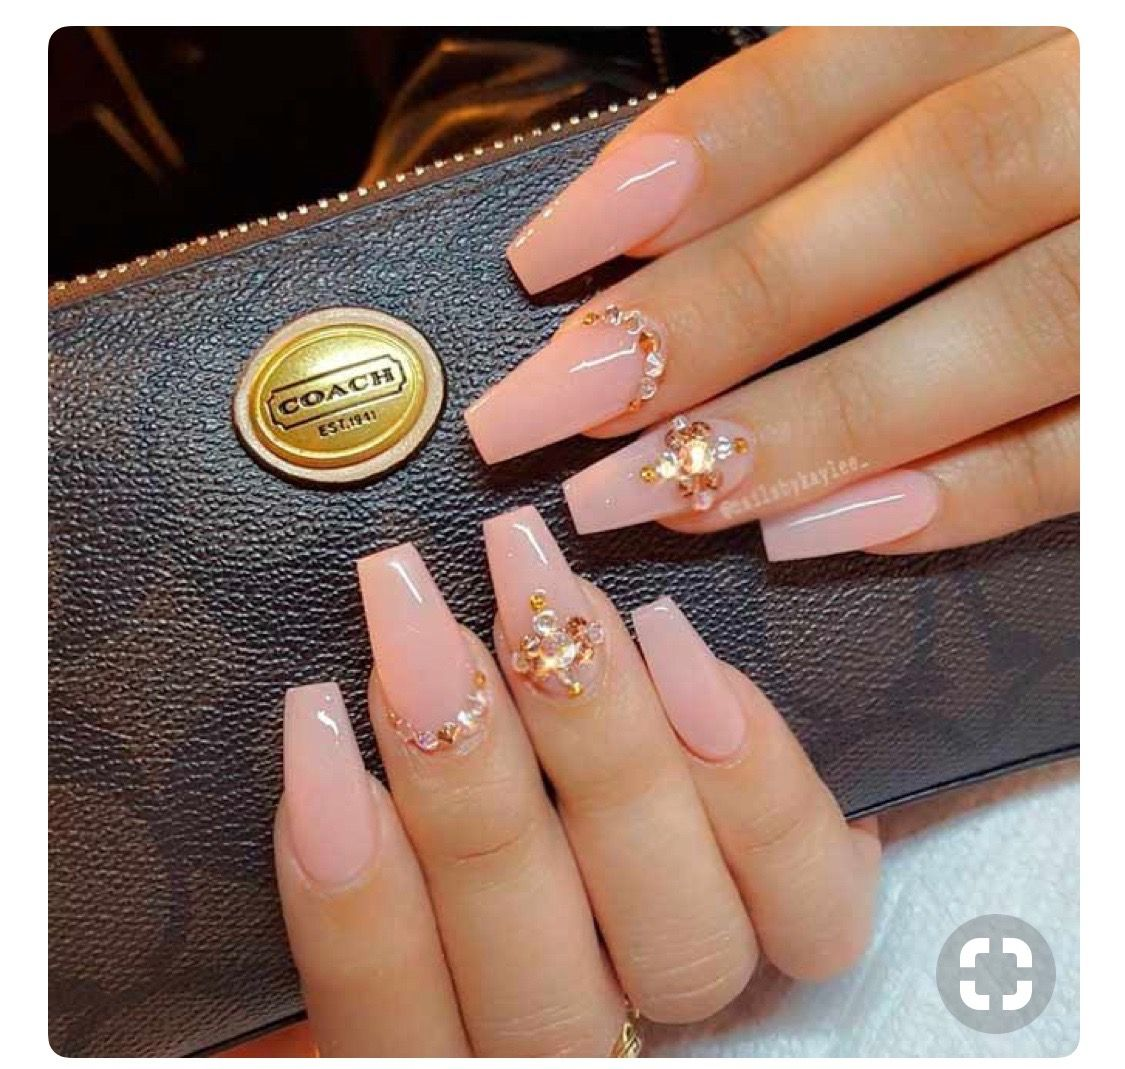 Pin by India Wylie on Nails | Pinterest | Nail nail, Nail swag and ...